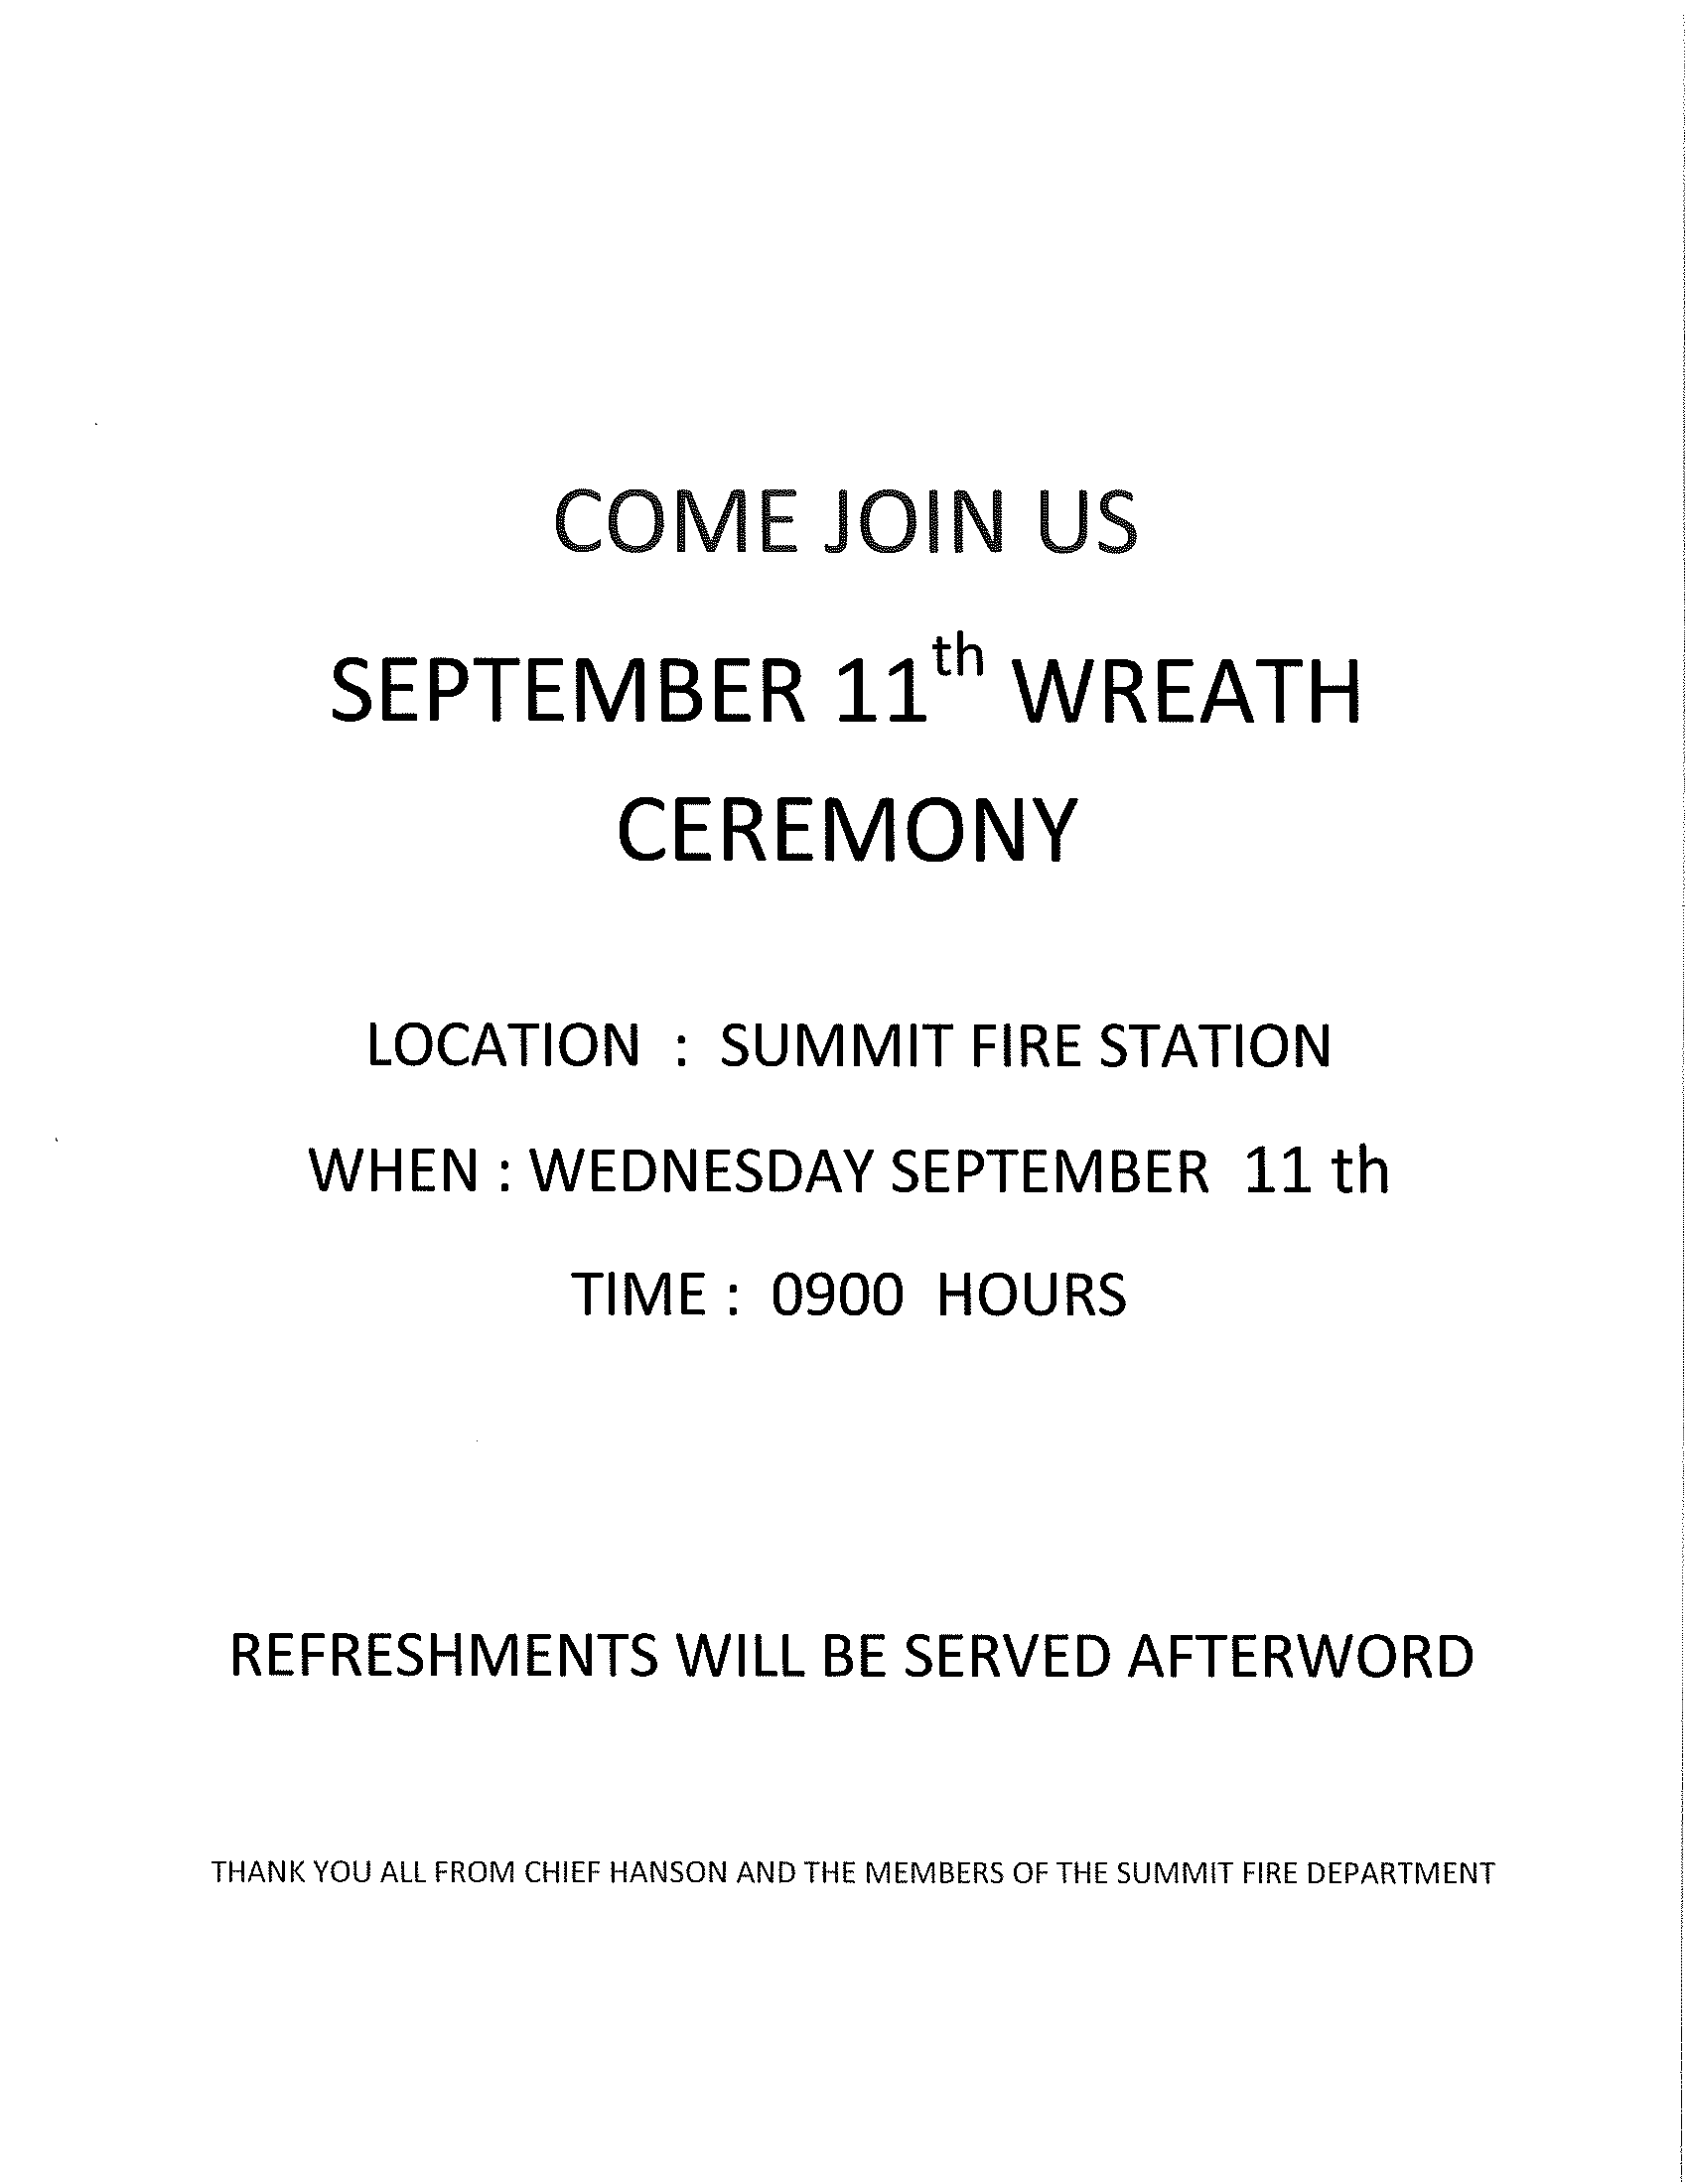 September 11th Wreath Ceremony Flyer